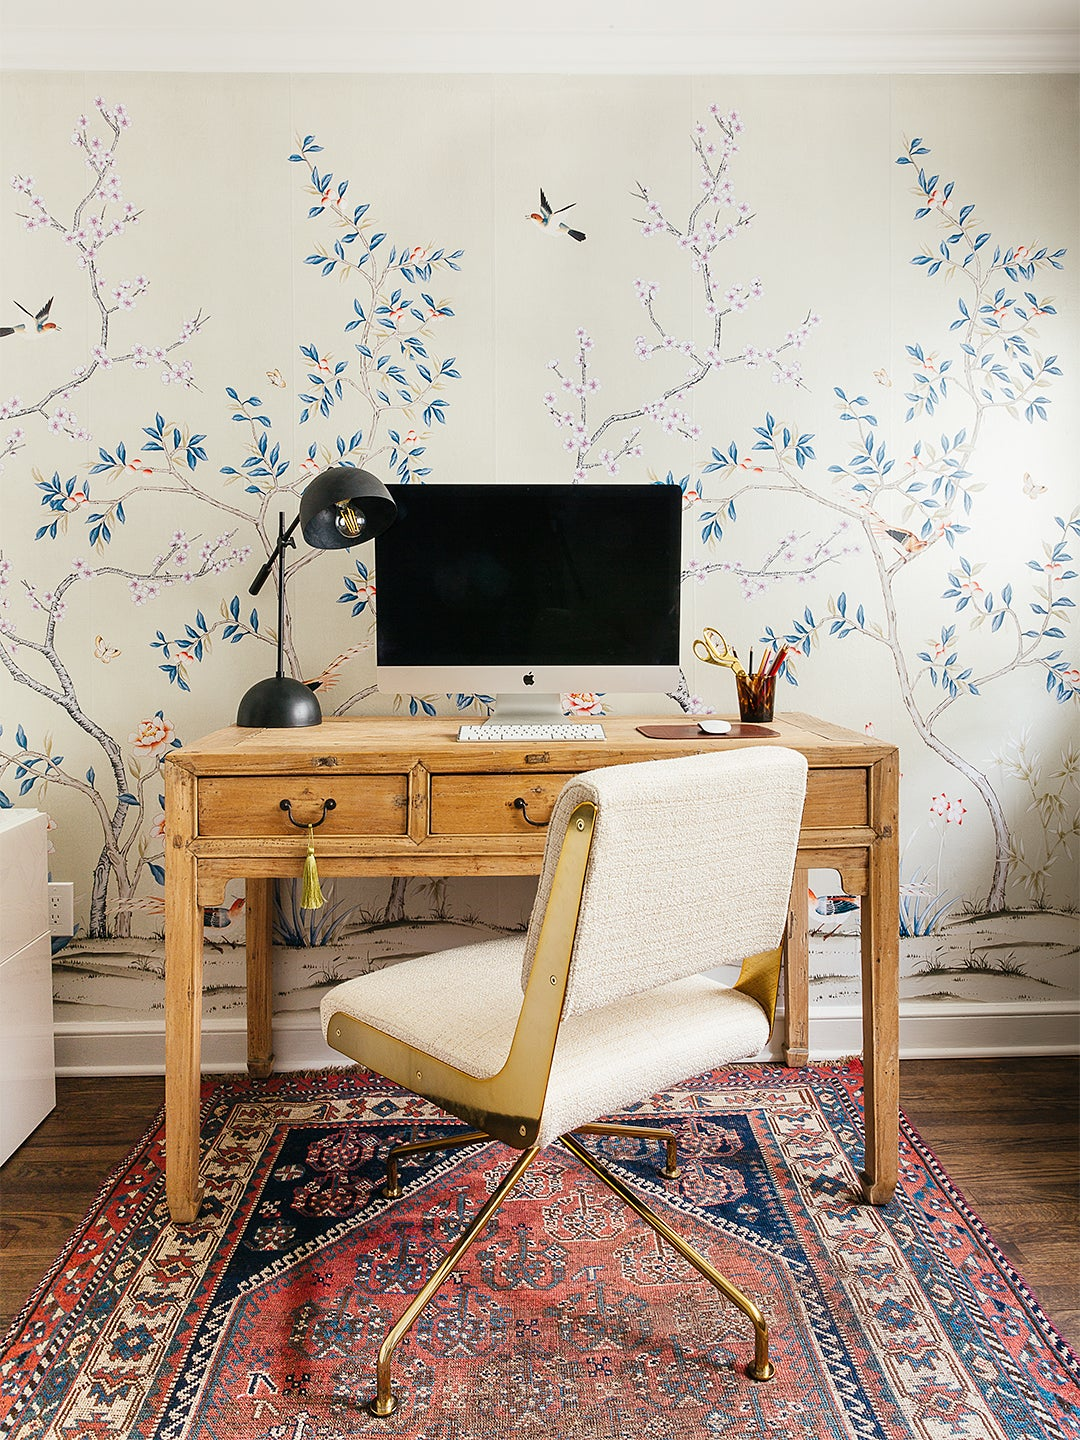 00-FEATURE-home-office-renovations-domino